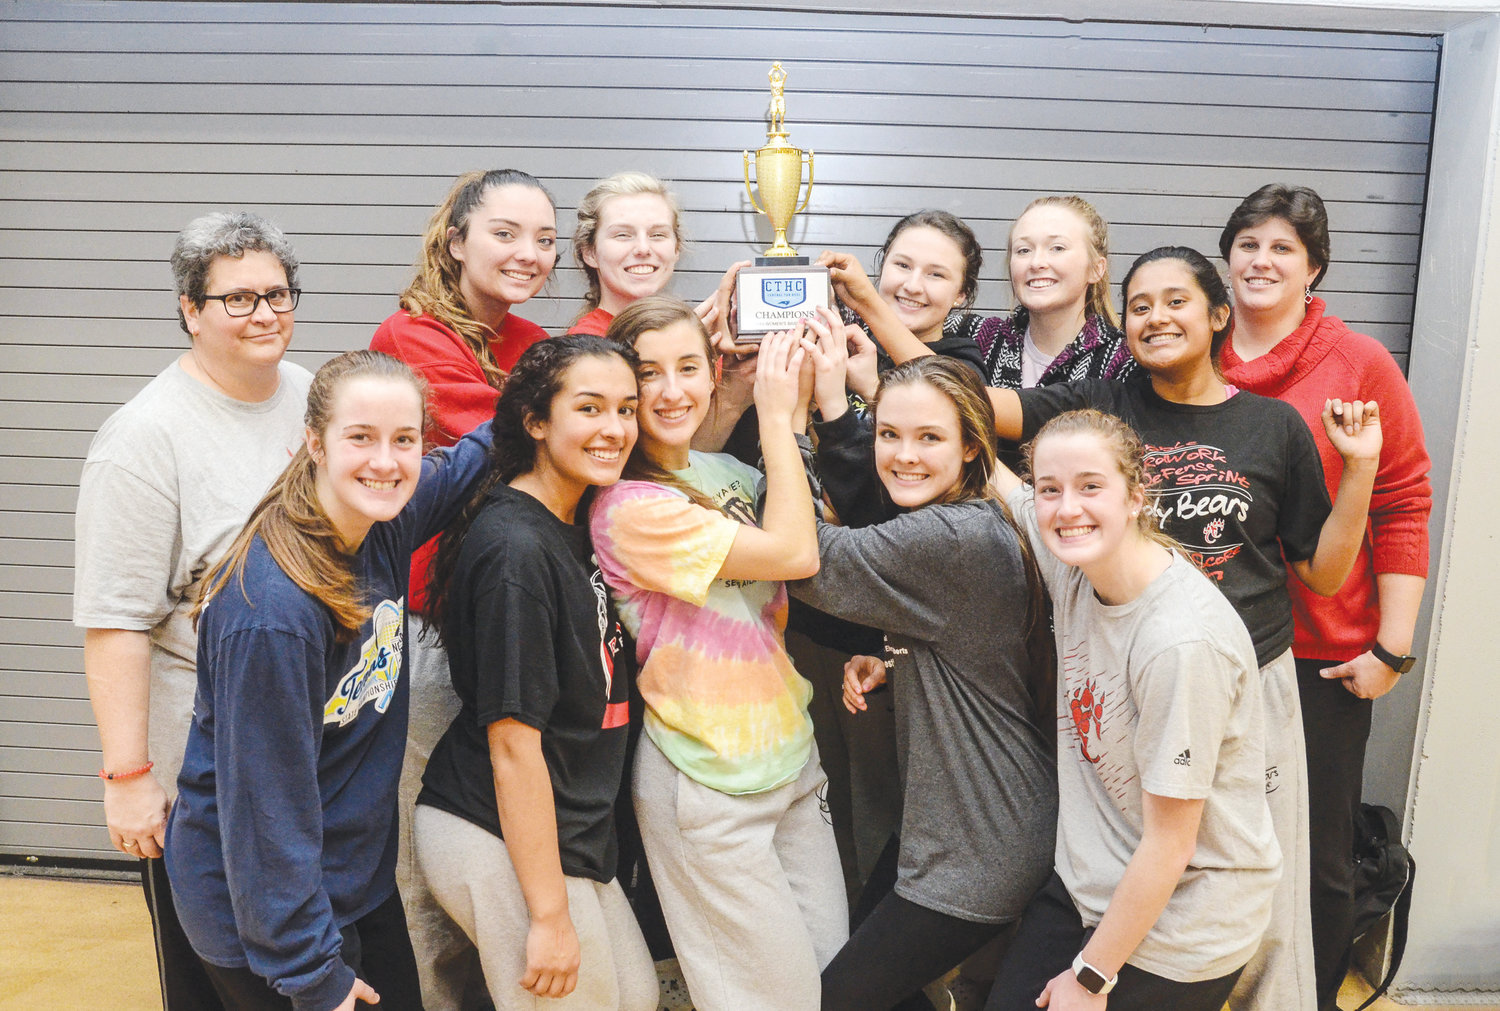 It was celebration time for the Chatham Central girl's basketball team on Friday night in Durham as the Lady Bears captured their second consecutive 1A Central Tar Heel Confernce regular season title with a convincing 70-41 victory over Research Triangle.